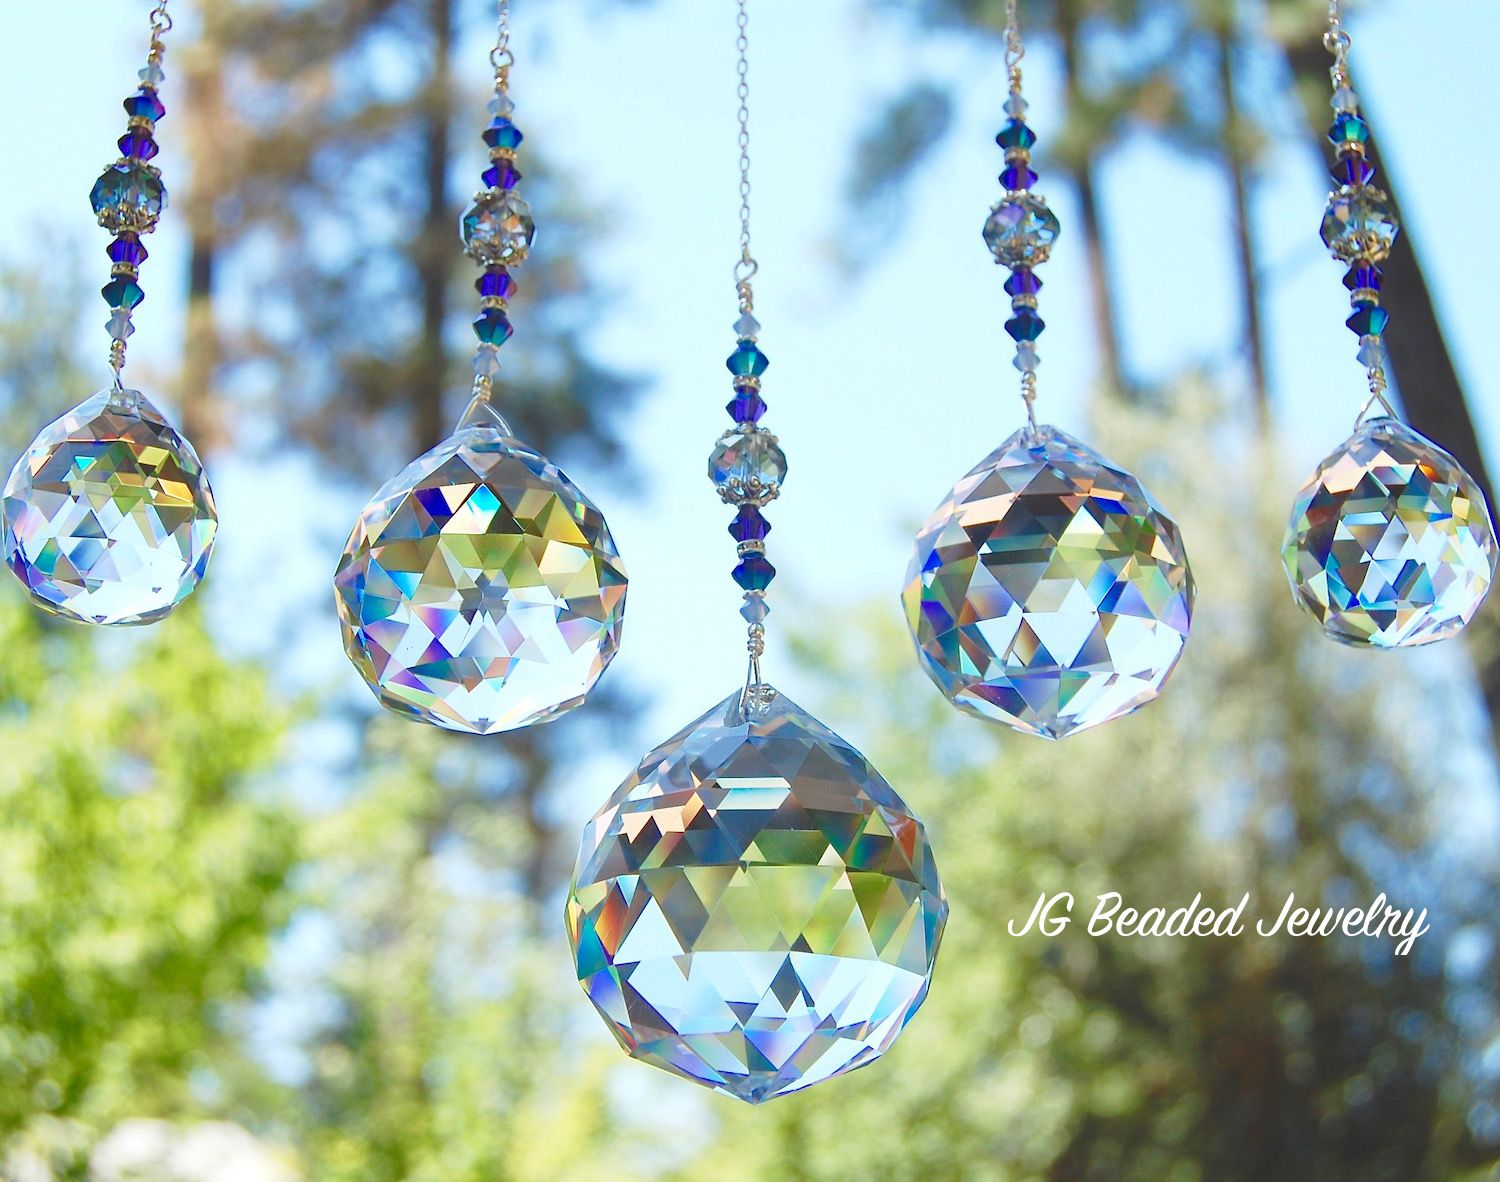 Crystal Prisms Hung In A Window Give You A Roomful Of Rainbows